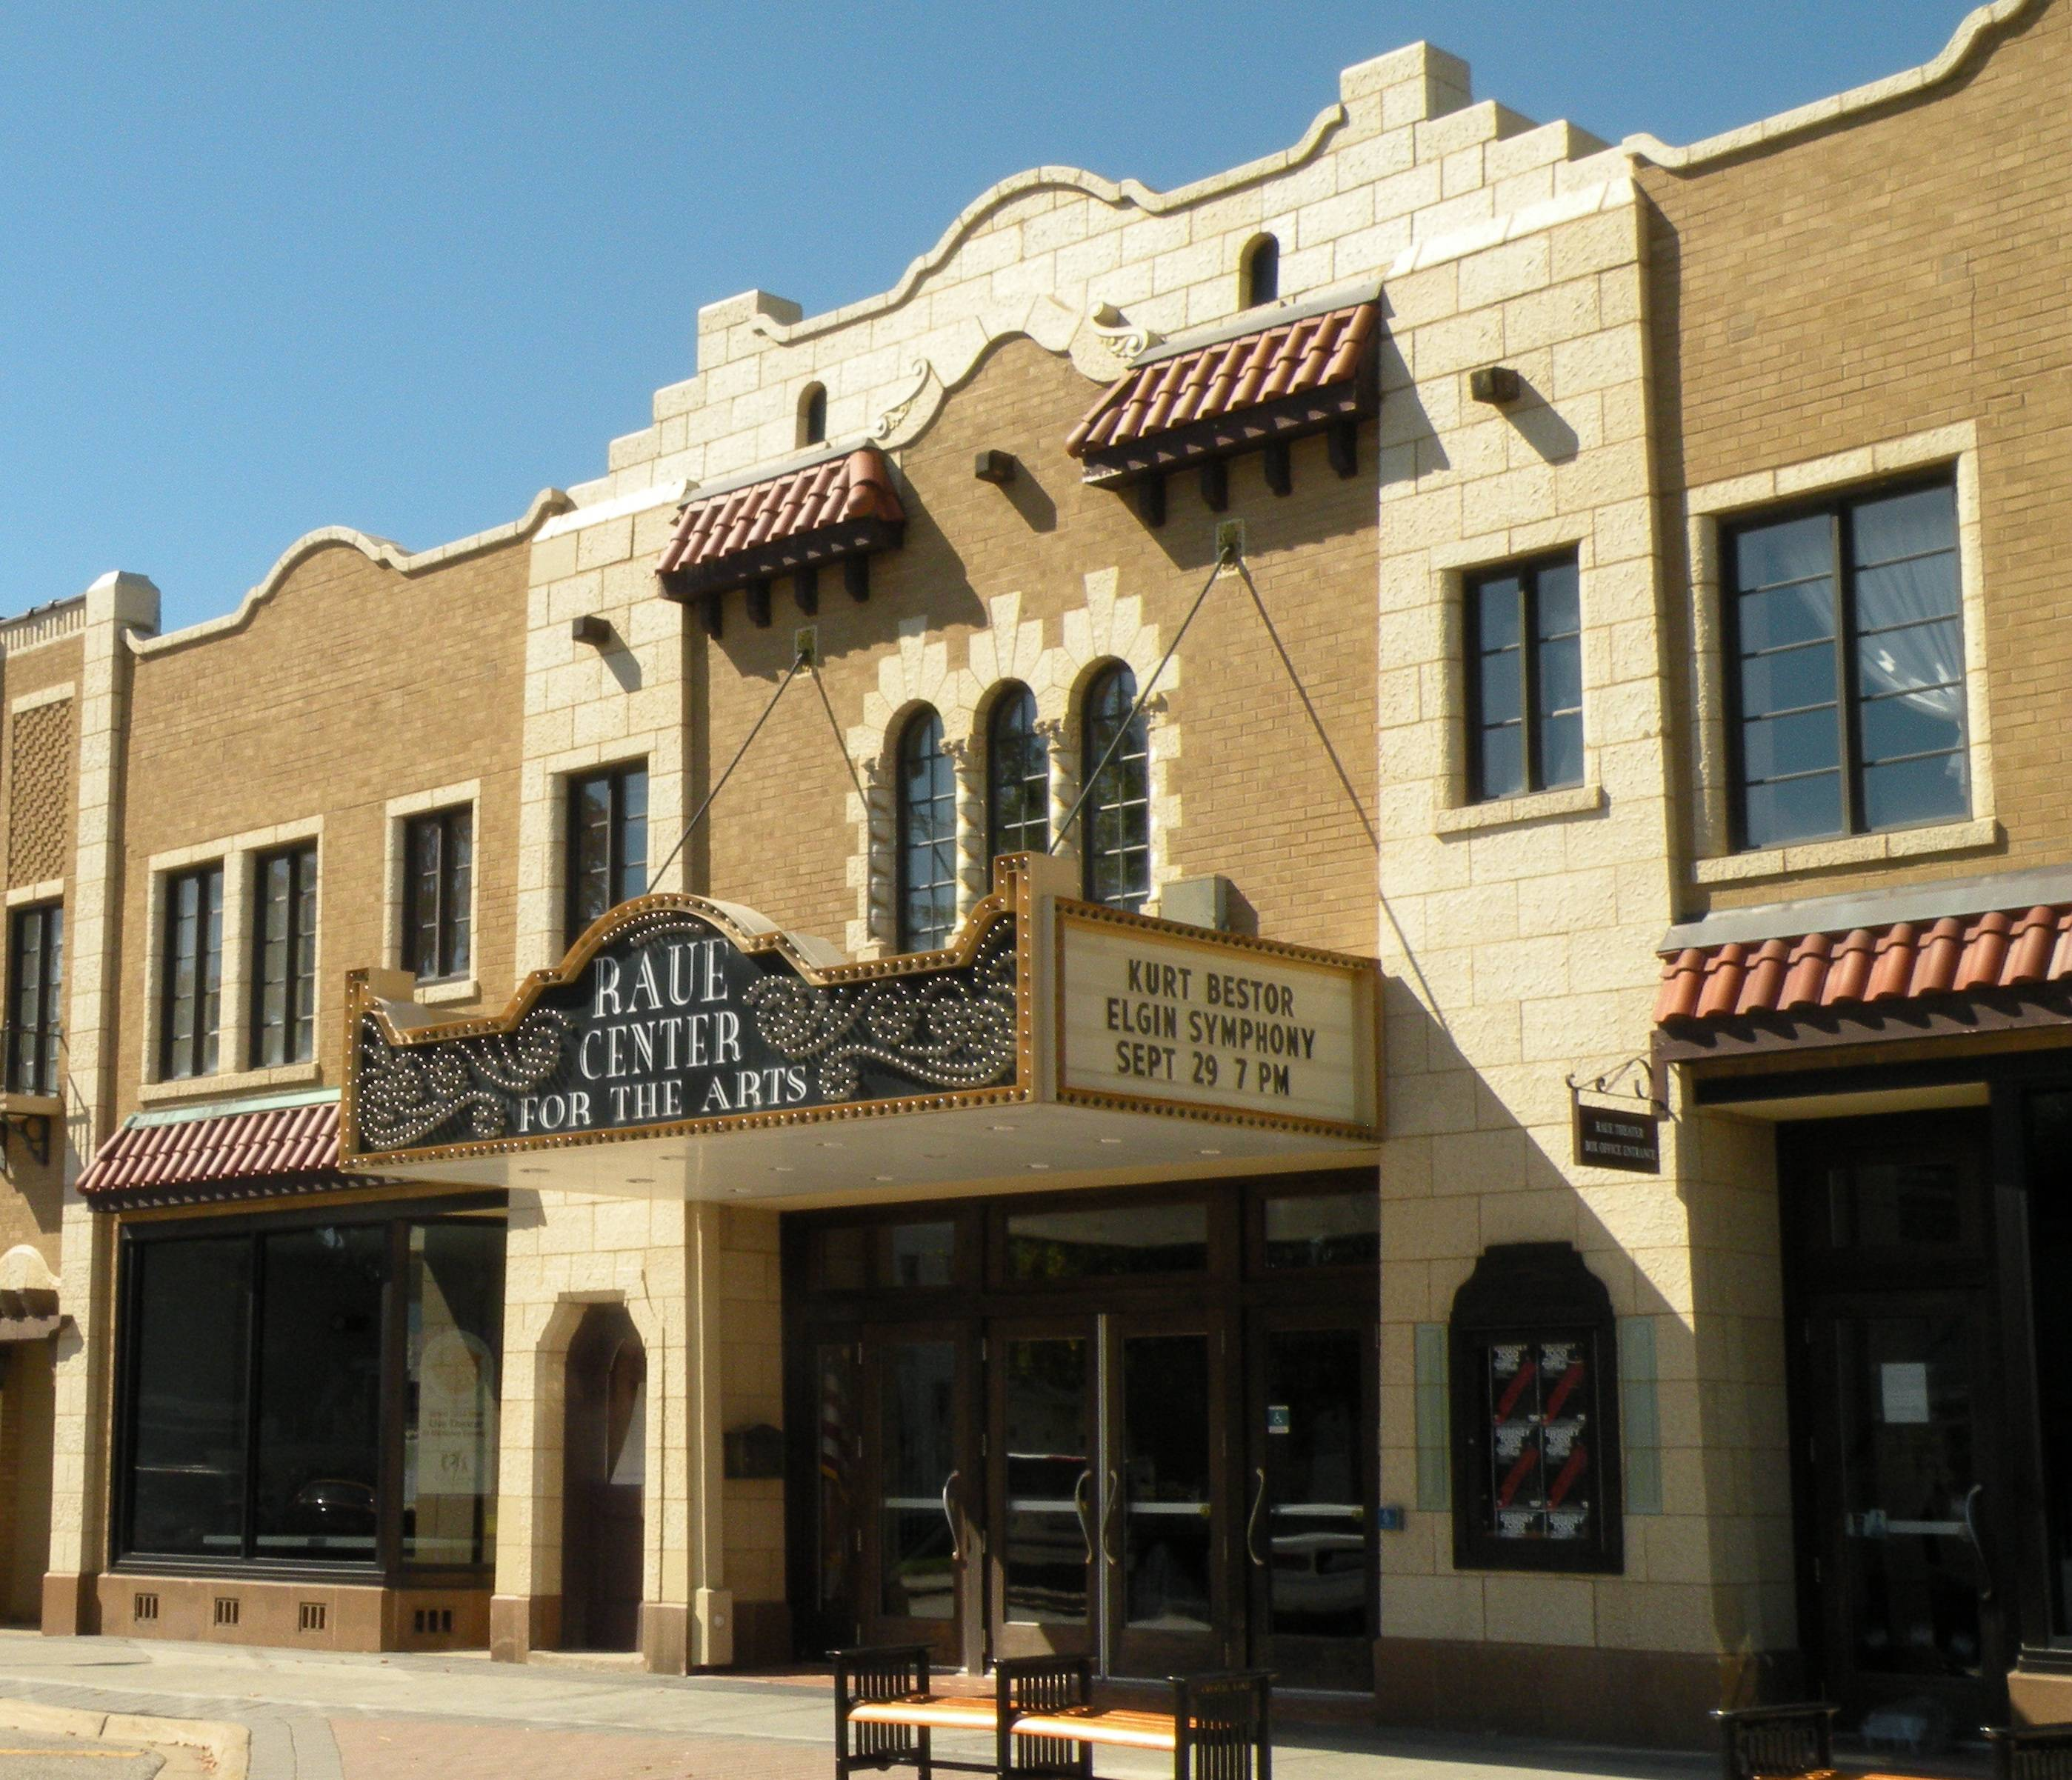 The 1929 El Tovar Theatre (Raue Center for the Arts) in Crystal Lake